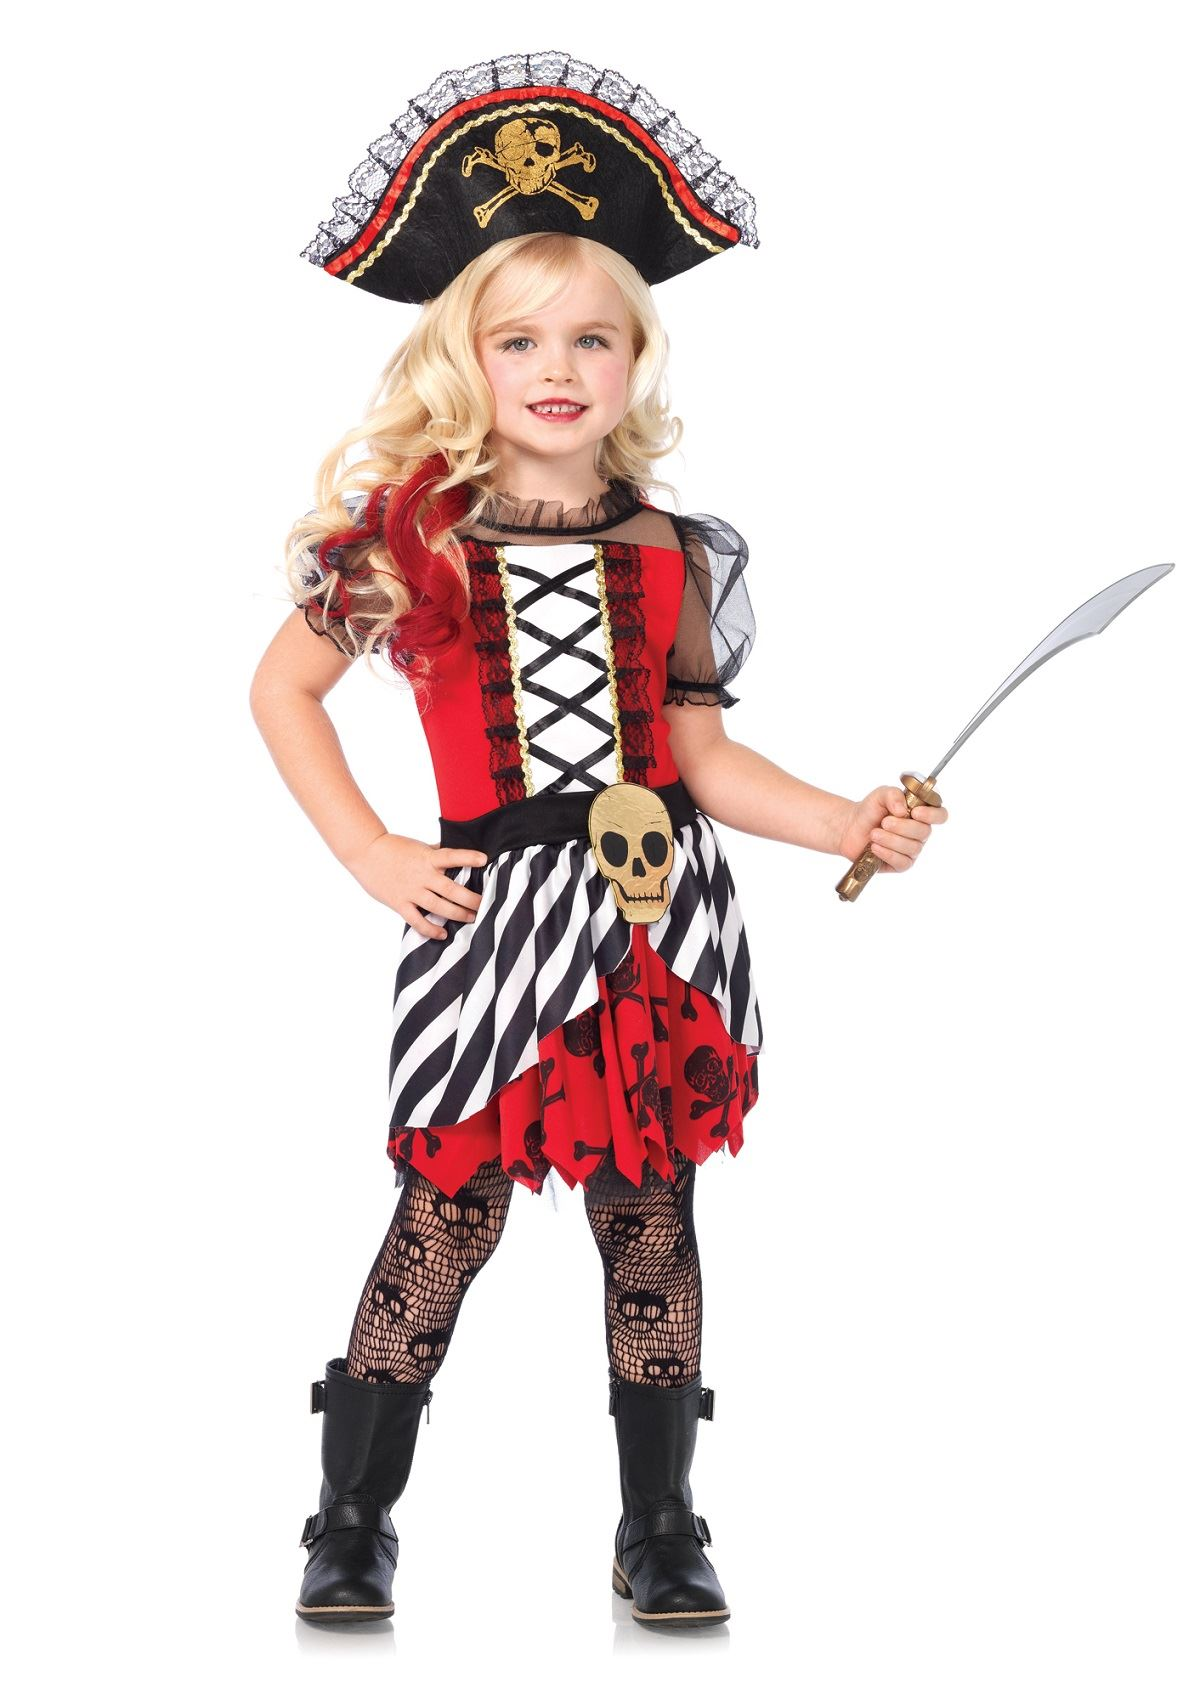 Pirate Costumes: Sailing the Seven Seas One Costume at a Time ...